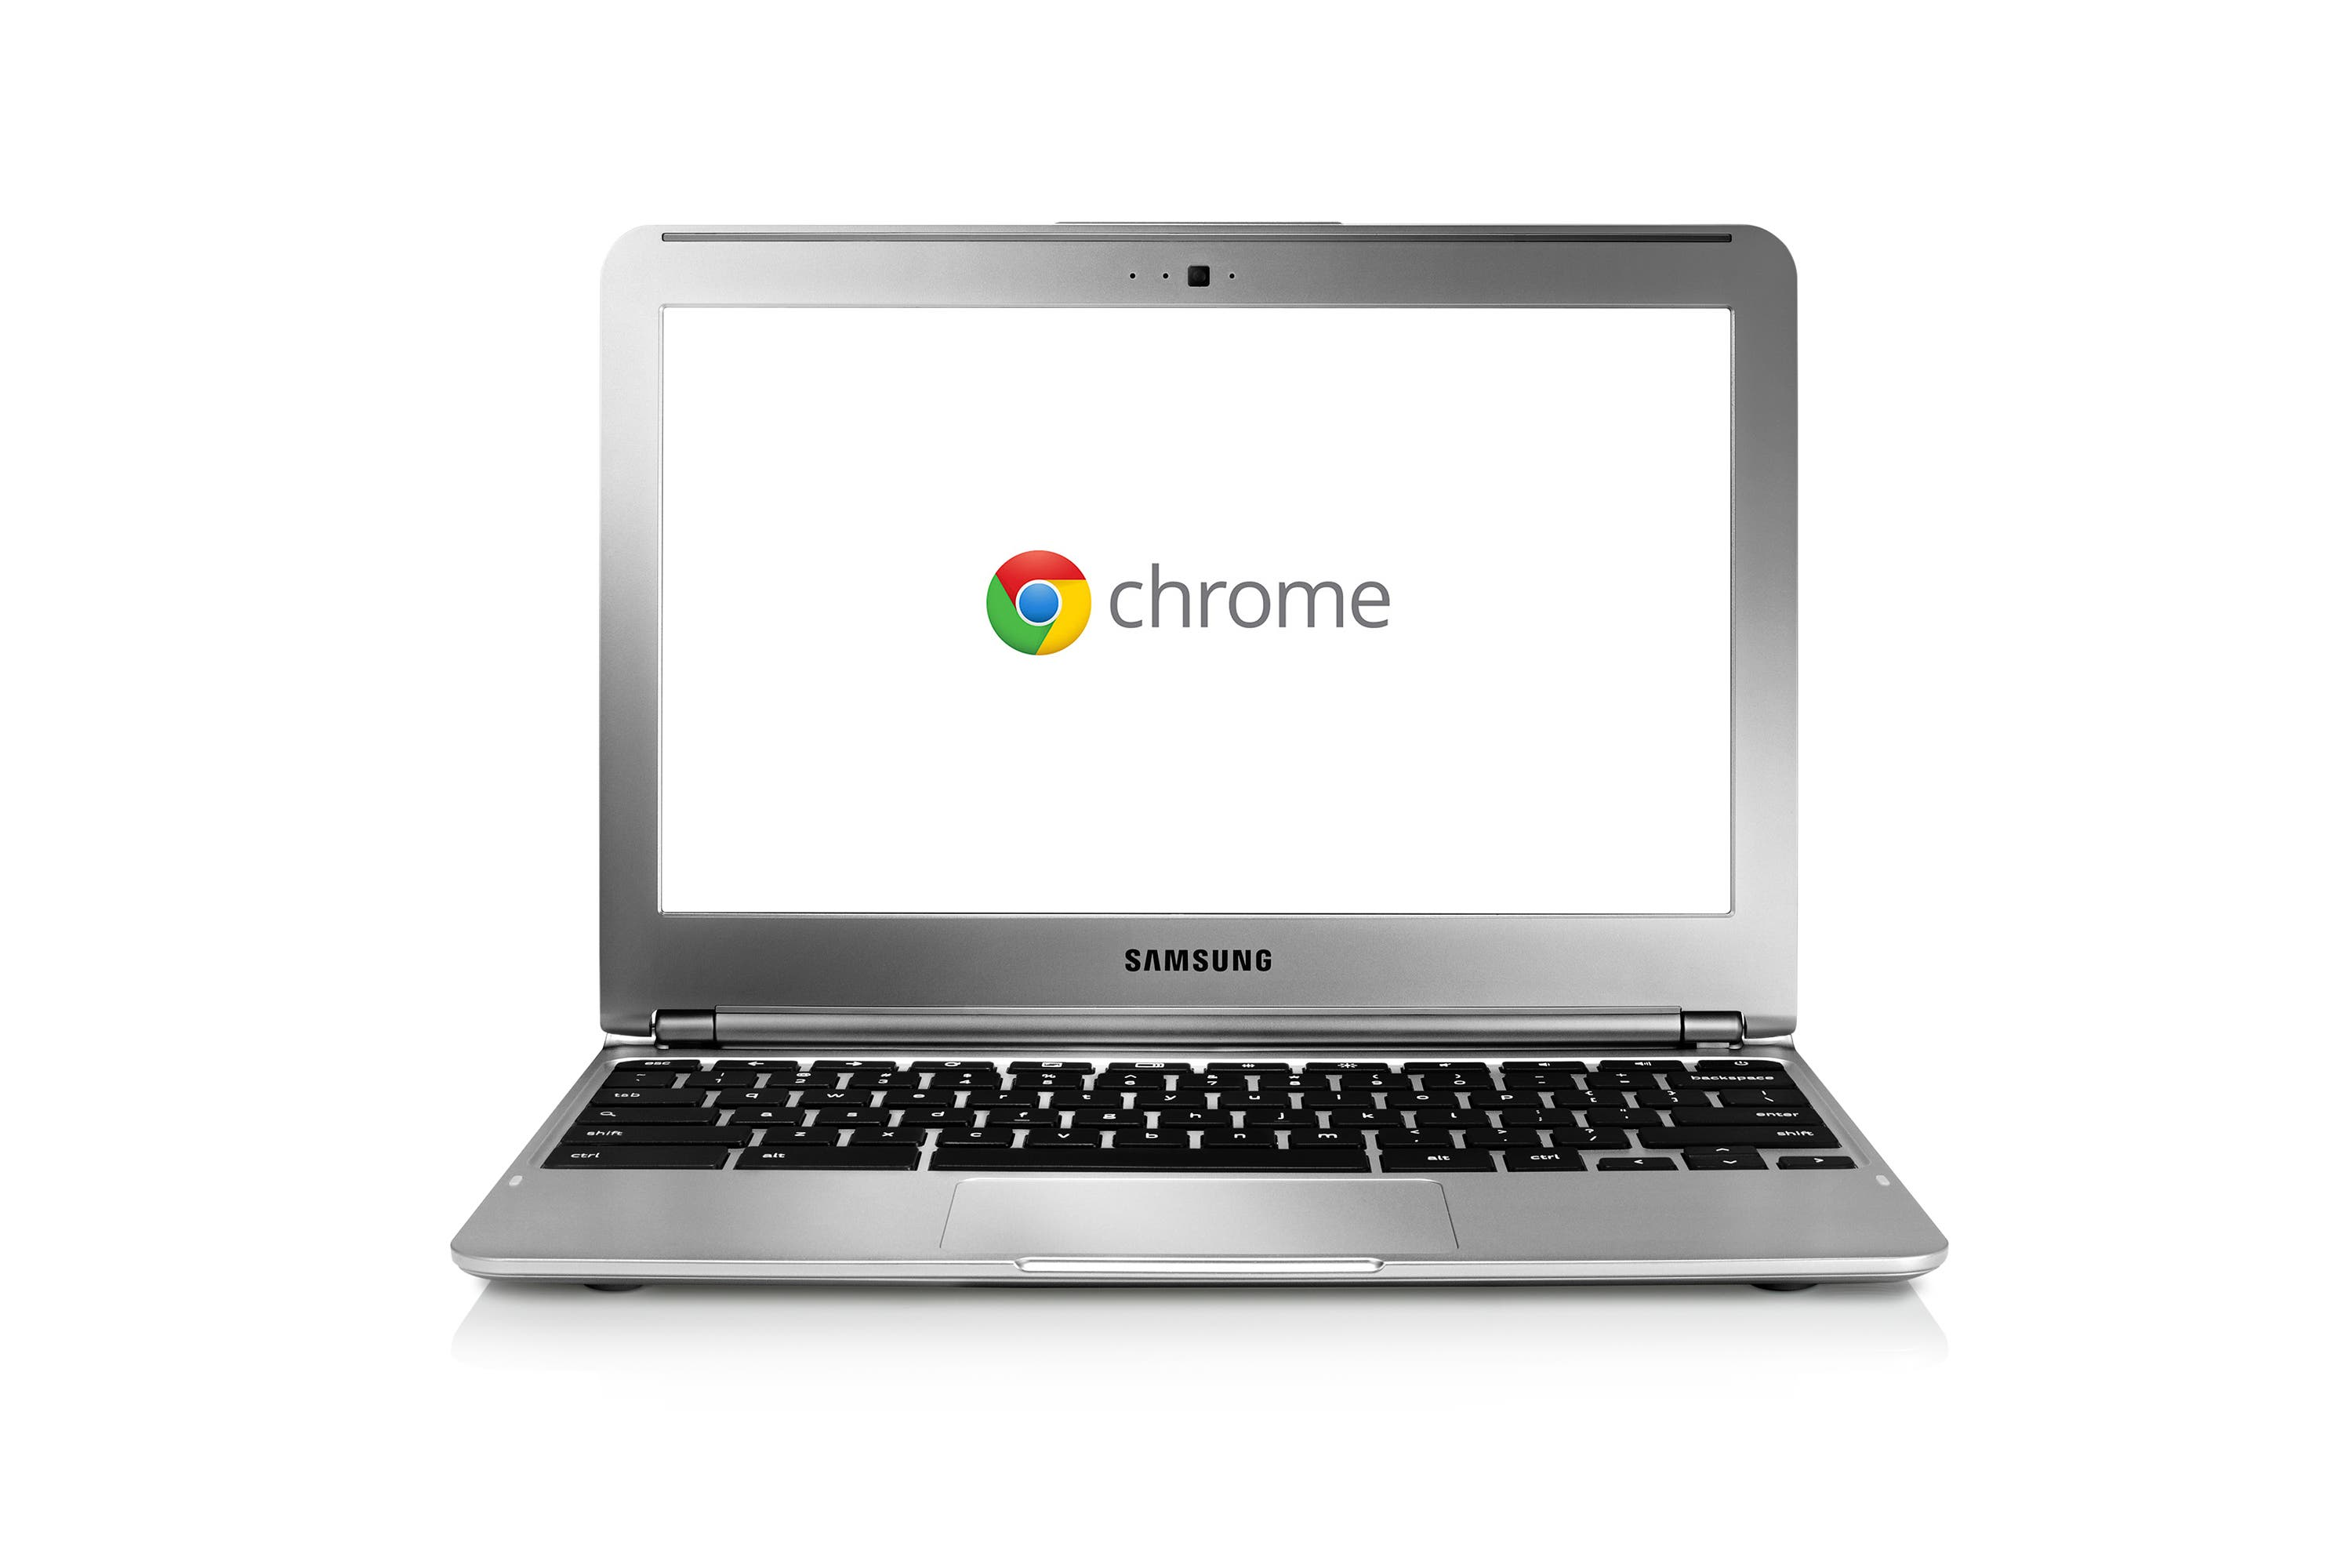 Acer und ASUS: neue Chromebooks noch 2013, Androidbooks in Planung